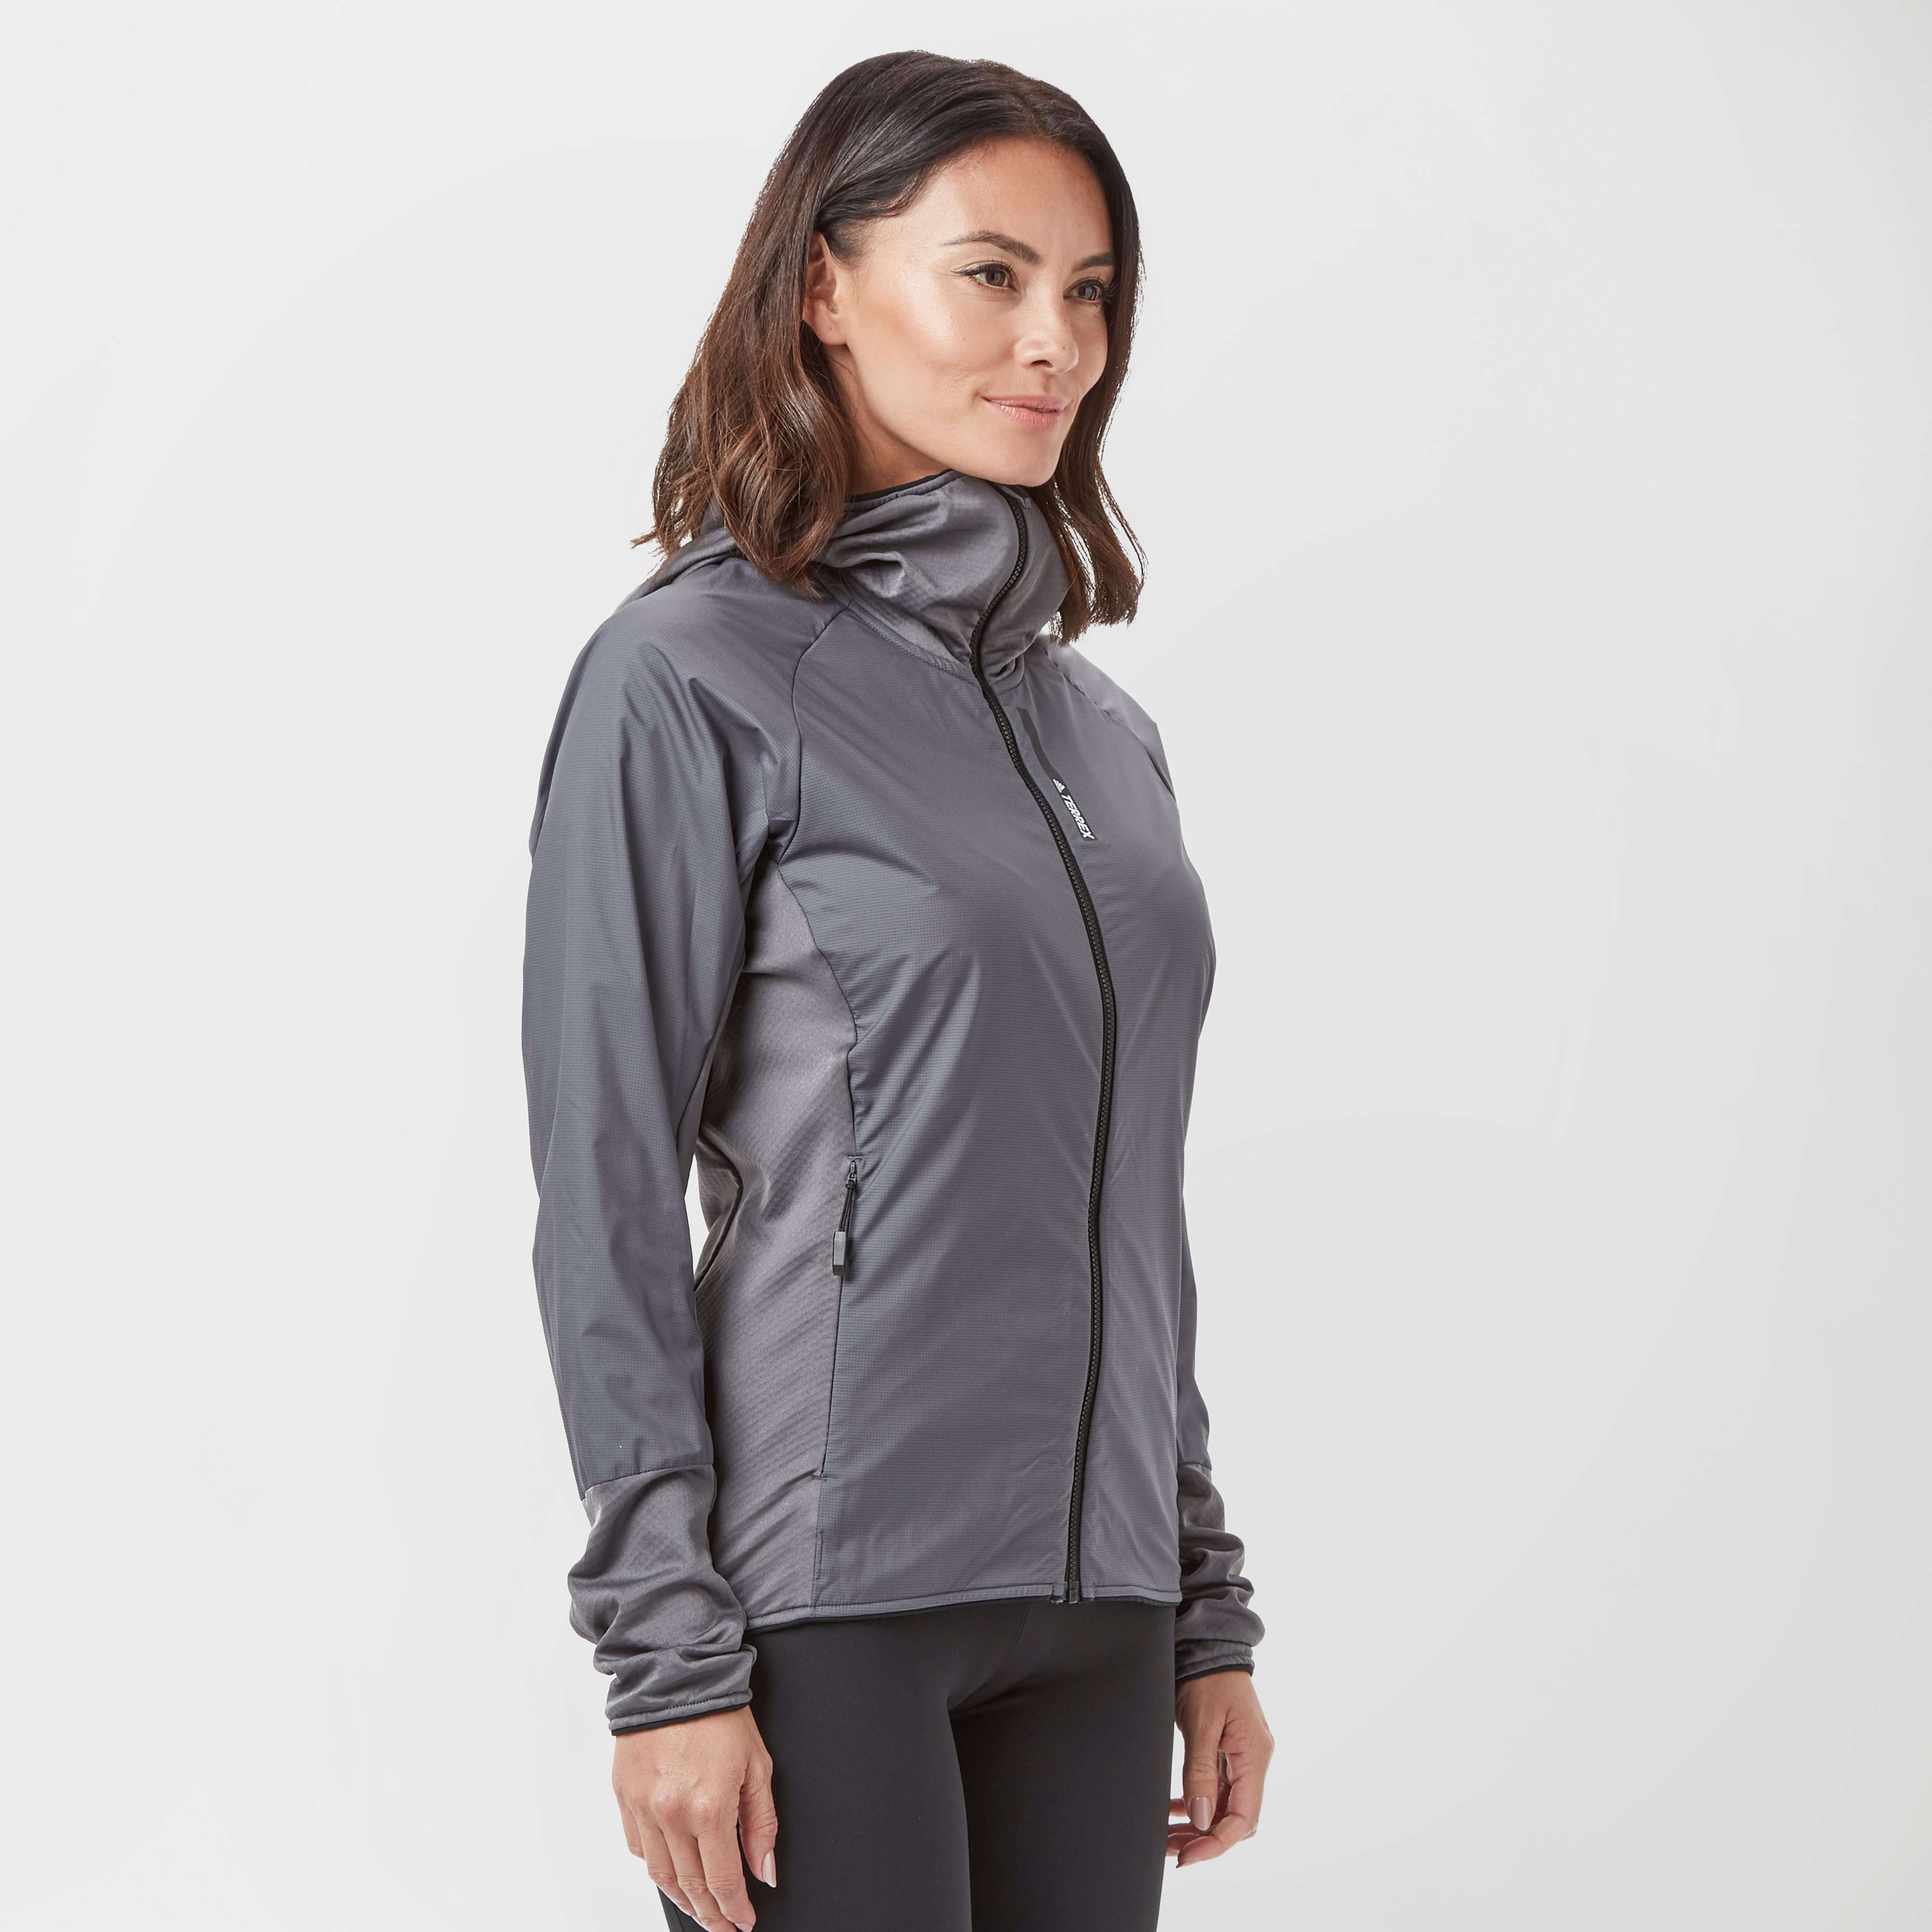 ADIDAS Women's Terrex  Sky Climb Insulated Jacket